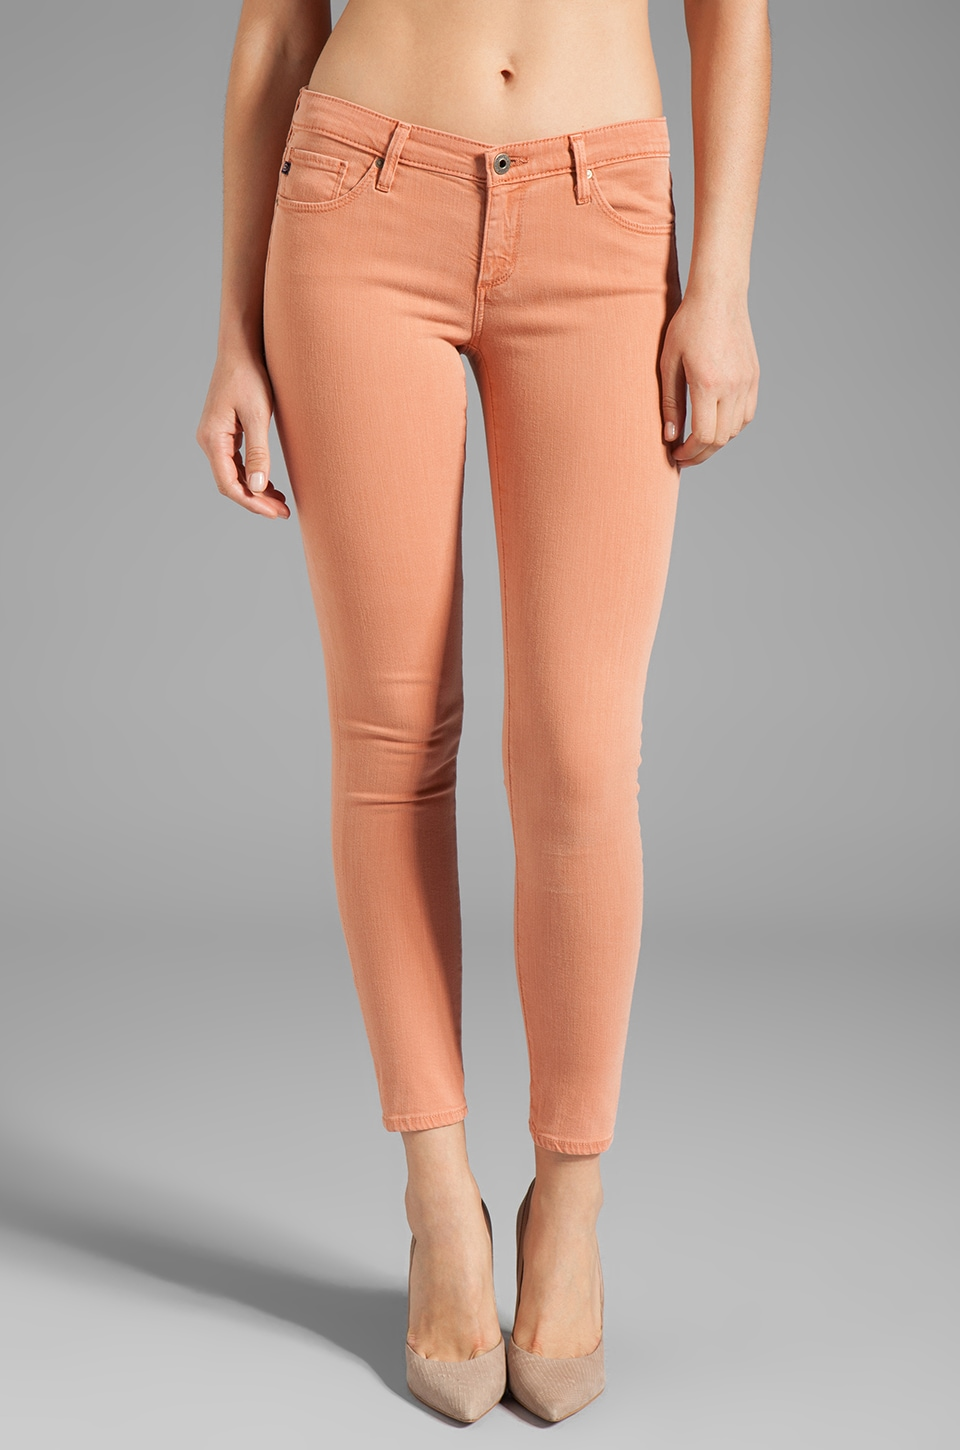 AG Adriano Goldschmied The Legging Super Skinny Ankle in Sulfure Whisper Pink